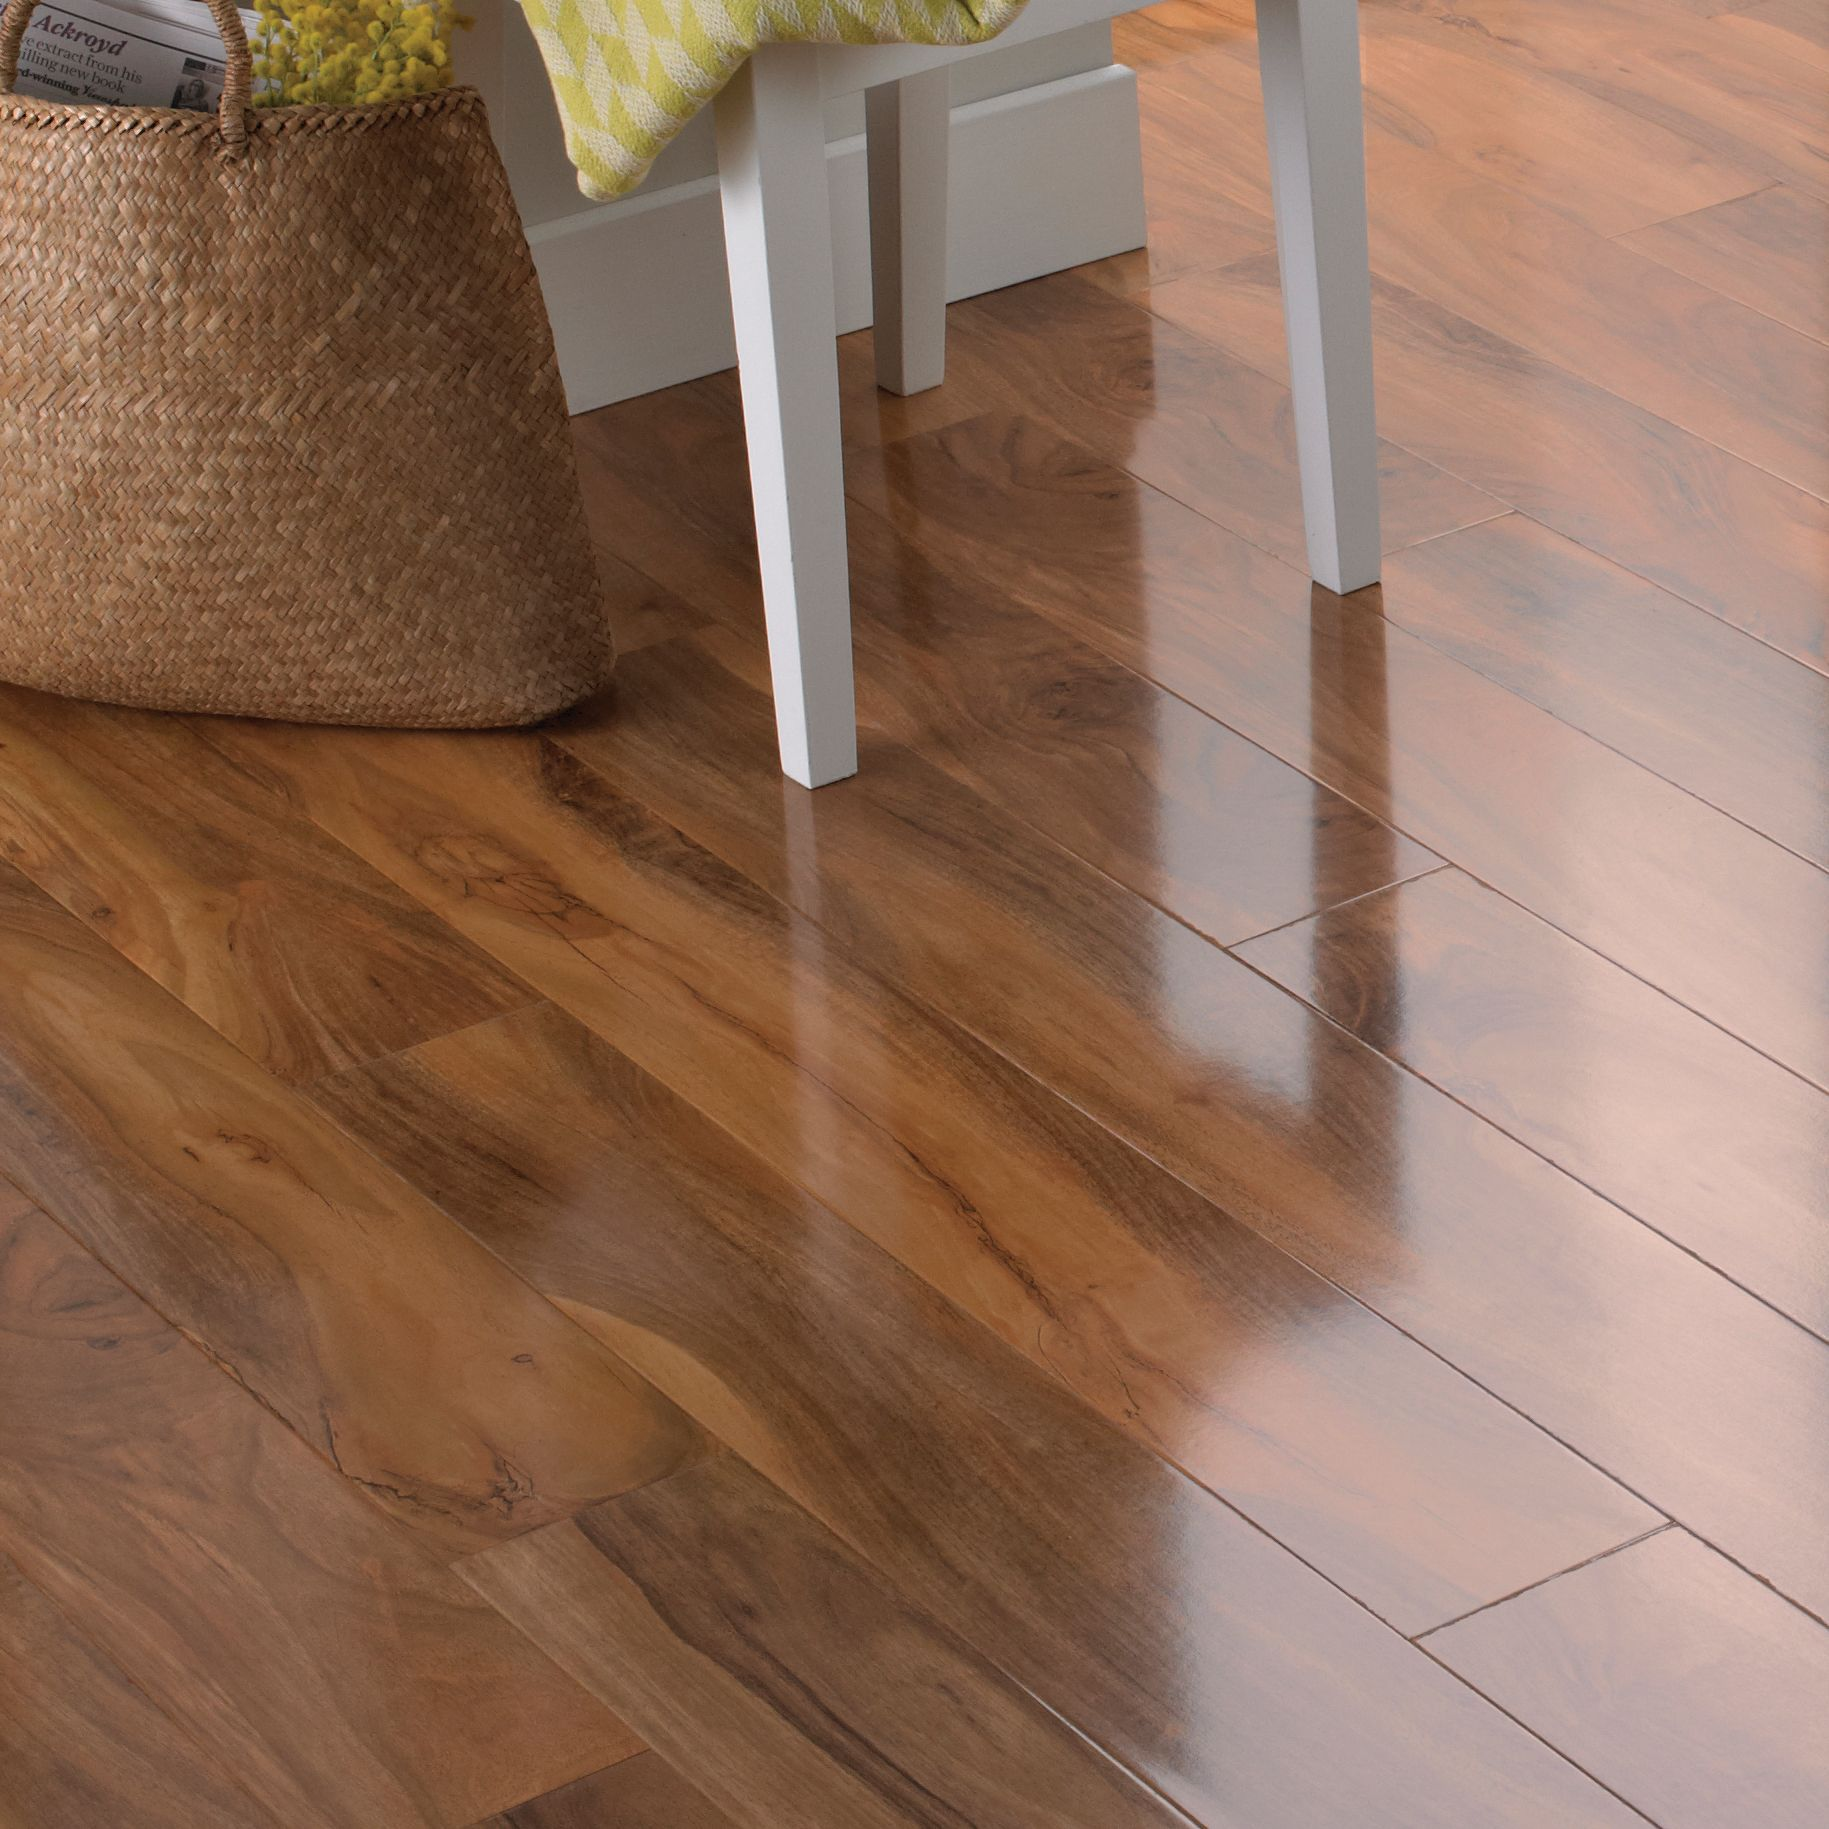 Diy At B Q: Dolce Natural Walnut Effect Laminate Flooring 1.19 M² Pack